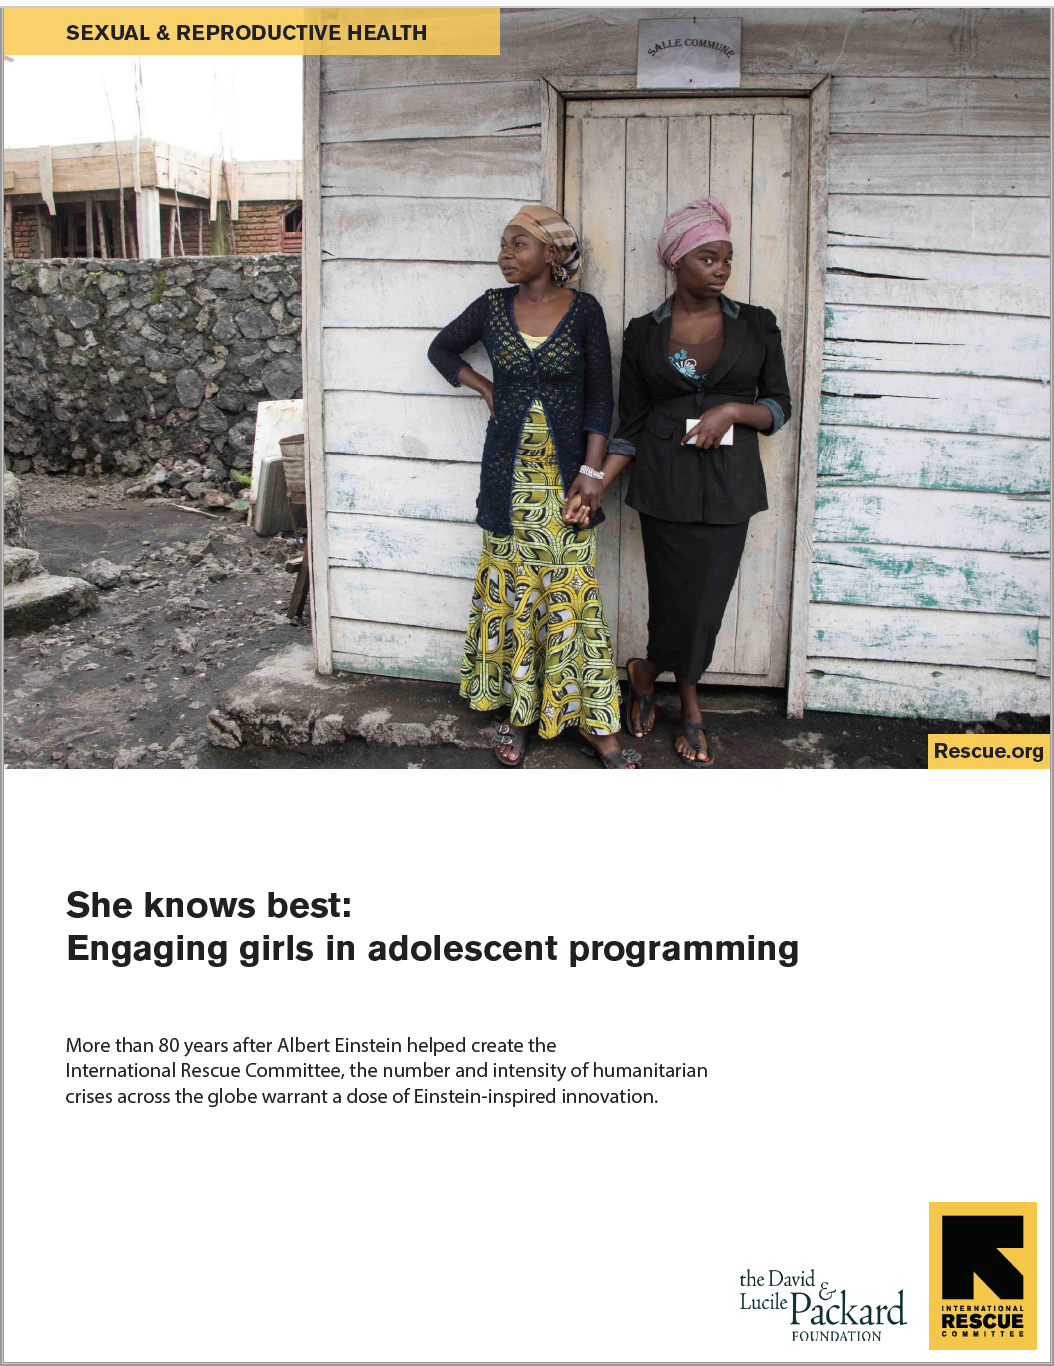 She knows best: Engaging girls in adolescent programming